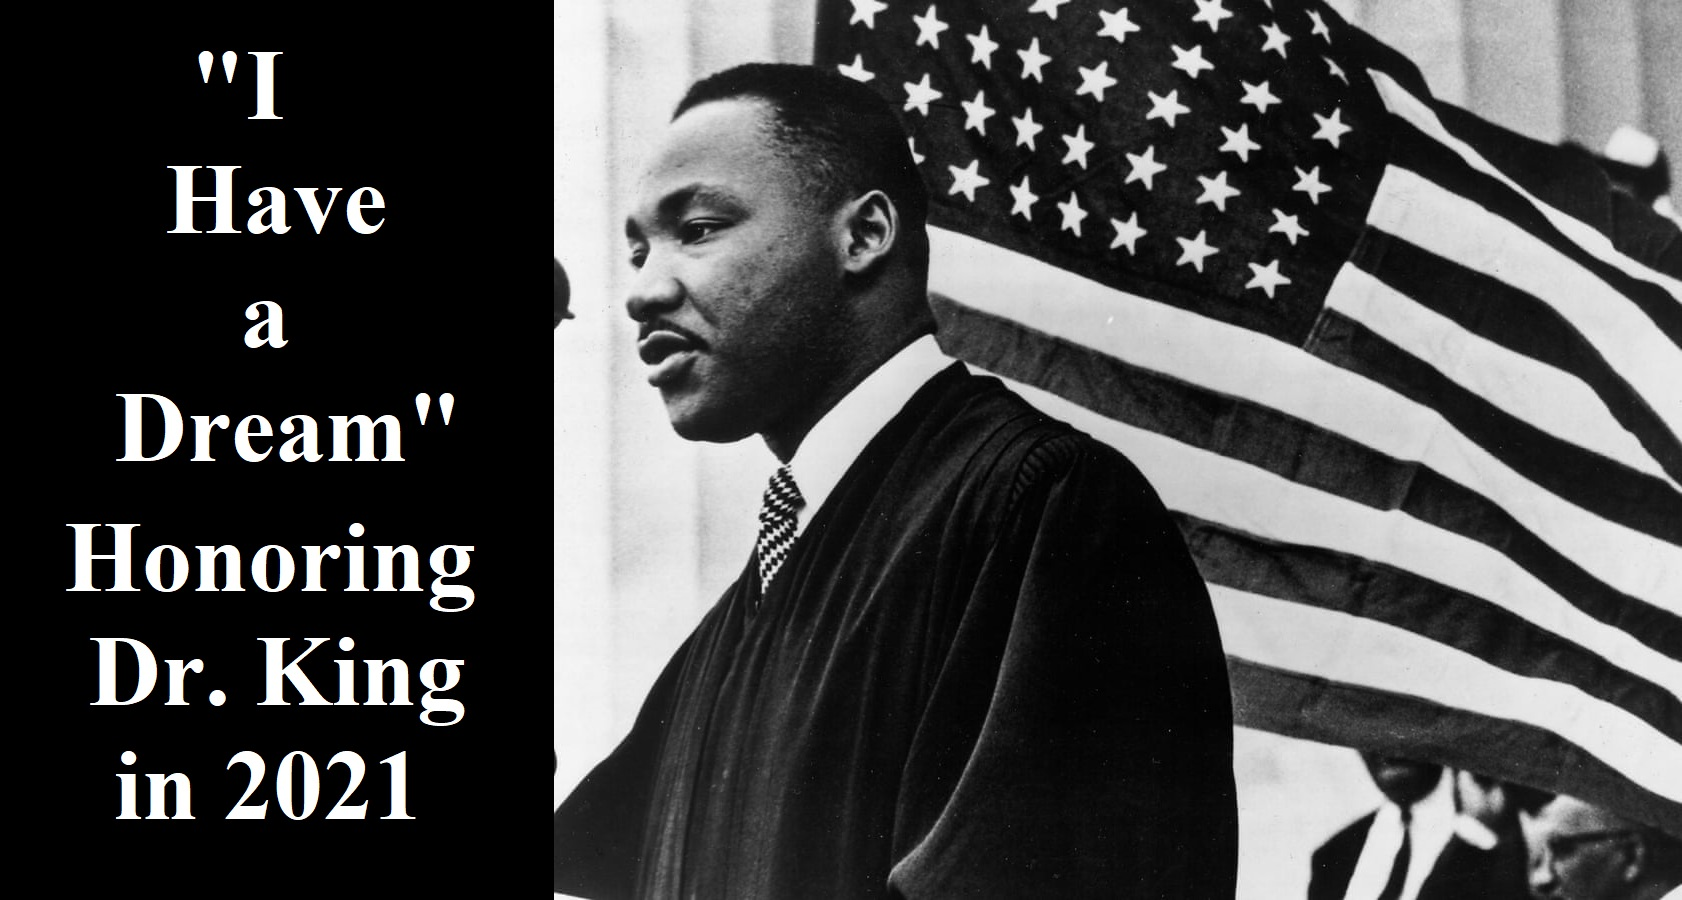 Martin Luther King Jr. 2021 inspirational quotes and photos